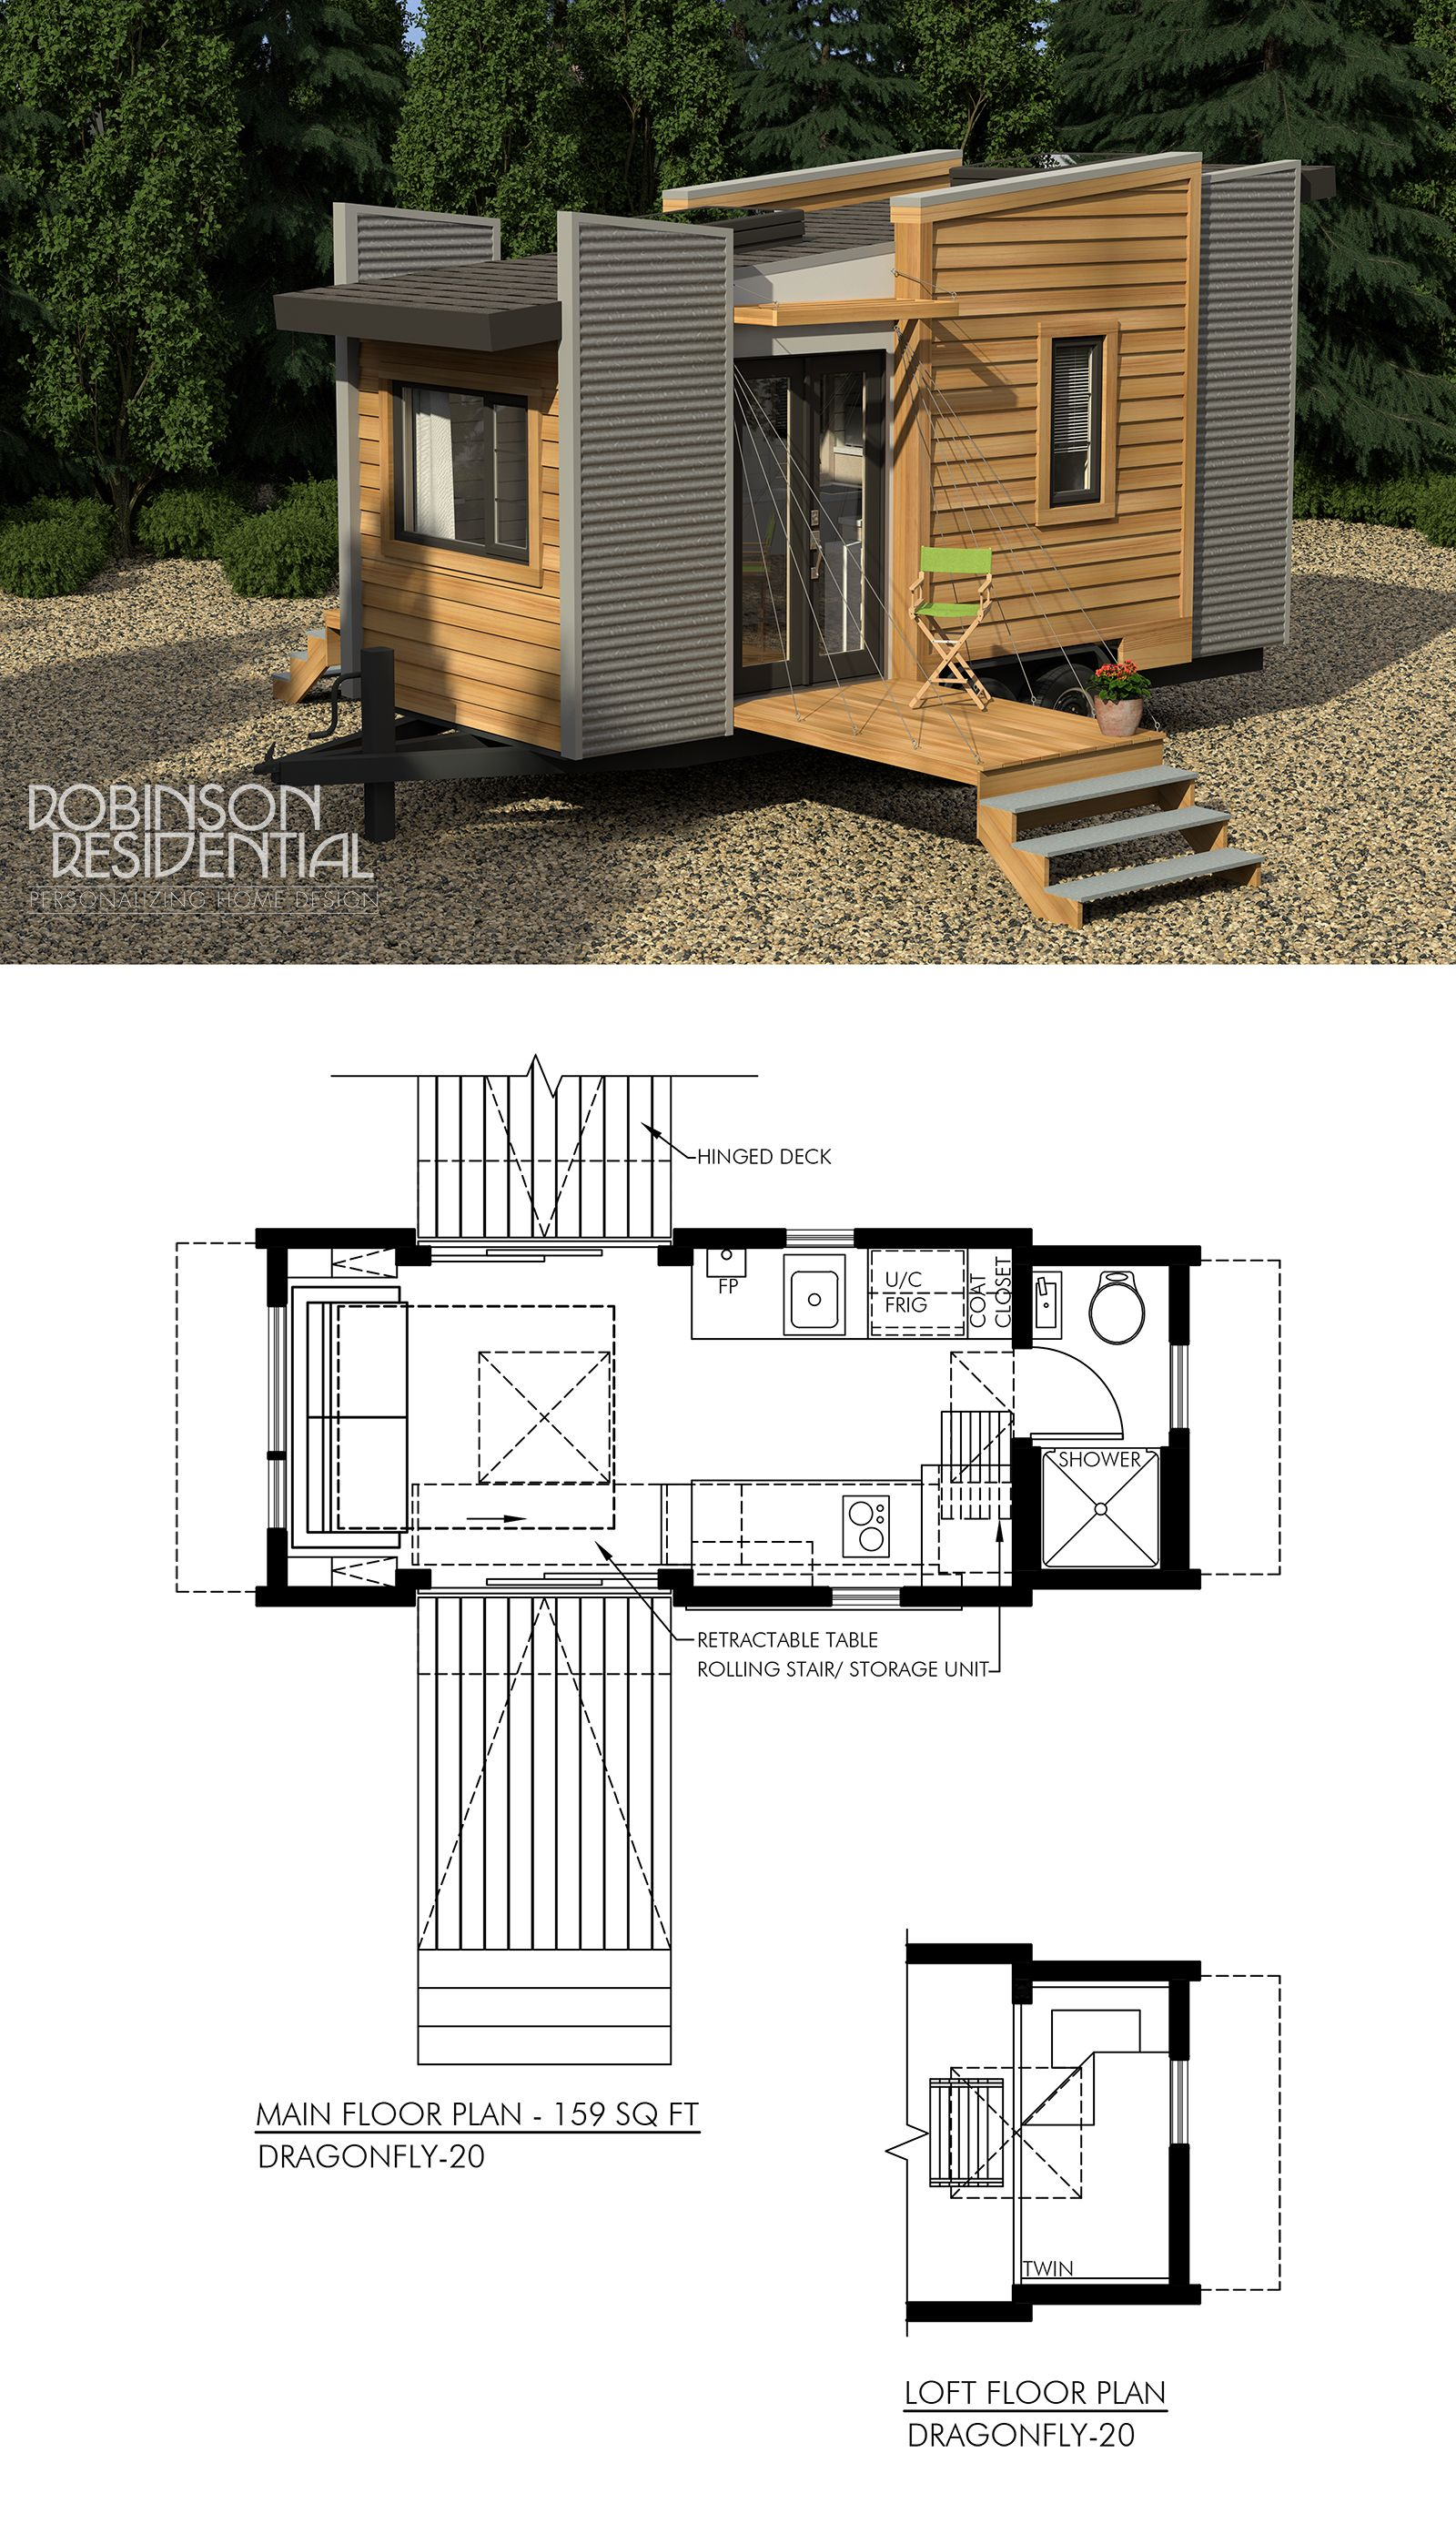 Contemporary Dragonfly-20 | The Geek in Me | Tiny house plans, Small